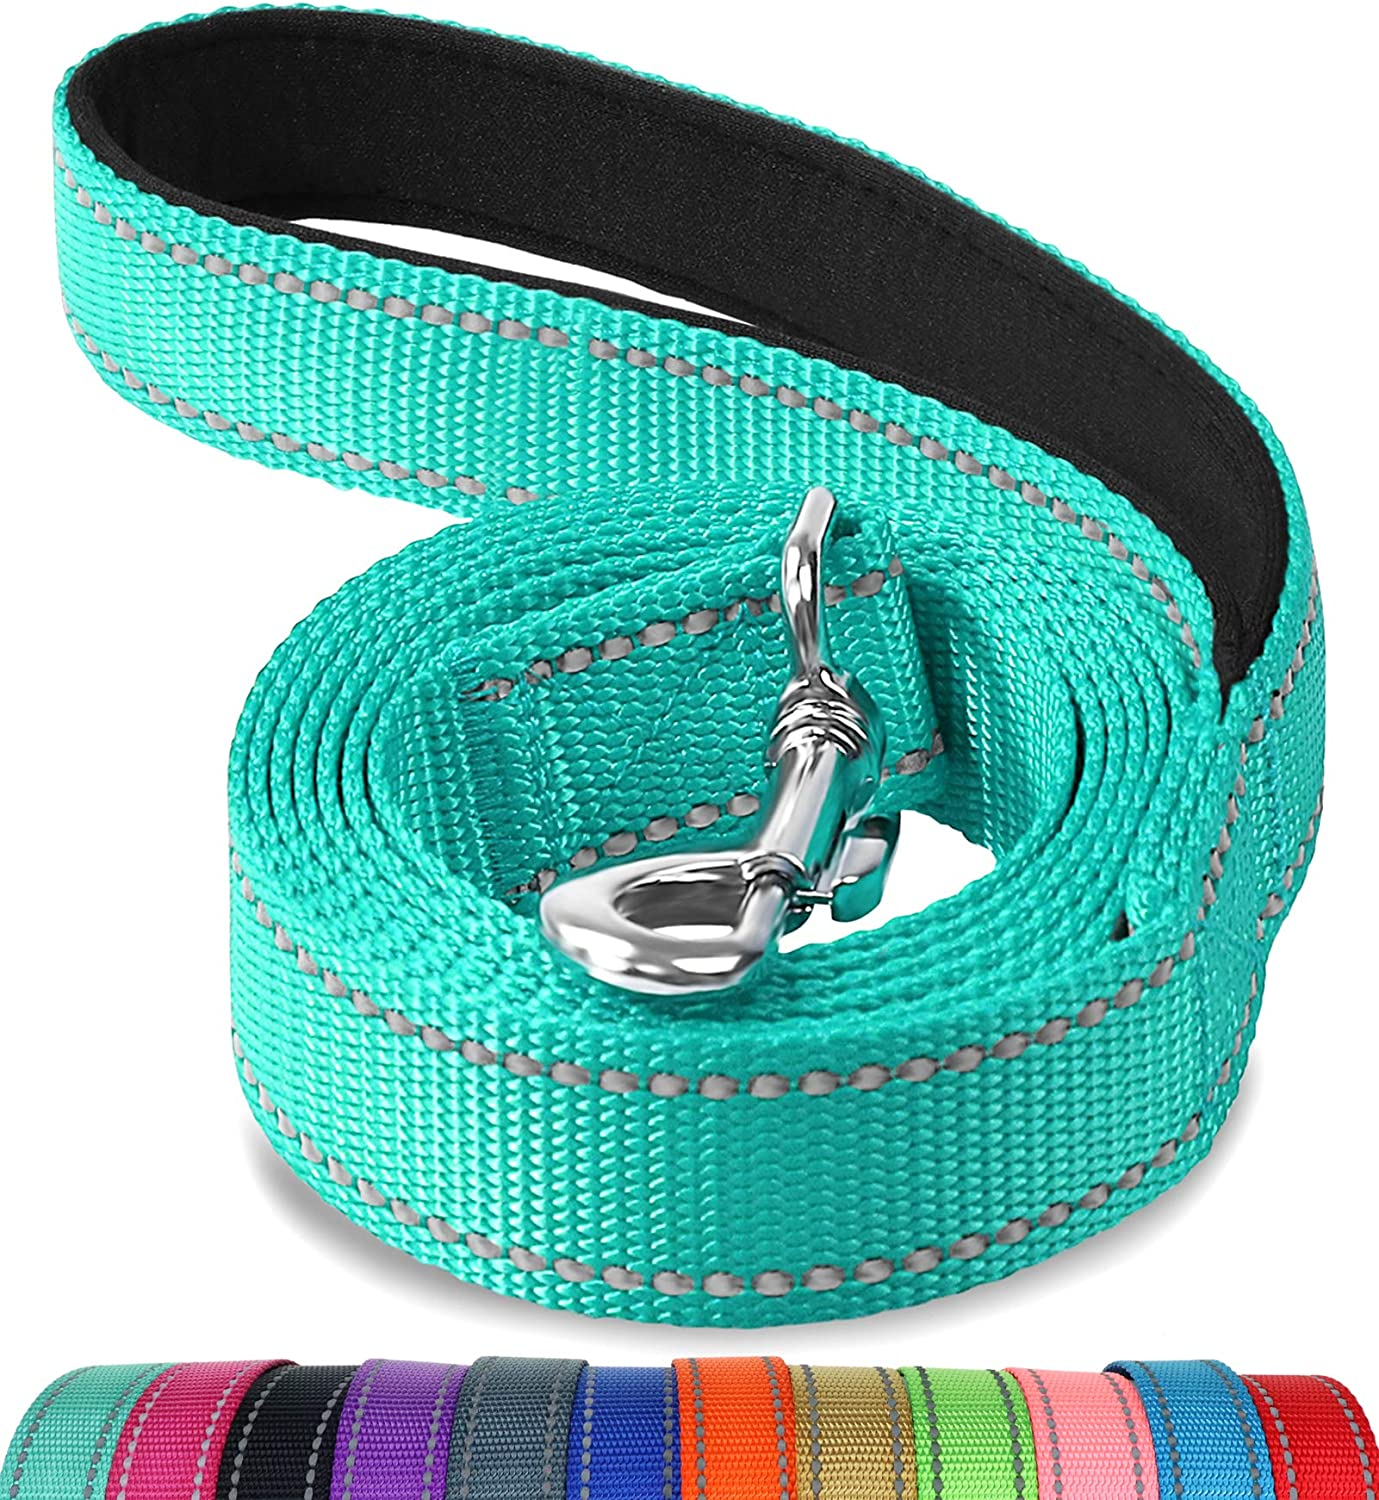 Joytale Reflective Nylon Dog Leash, Padded Handle Dogs Leashes for Walking,Training Lead for Medium & Small Dogs, 6FT,Teal : Pet Supplies